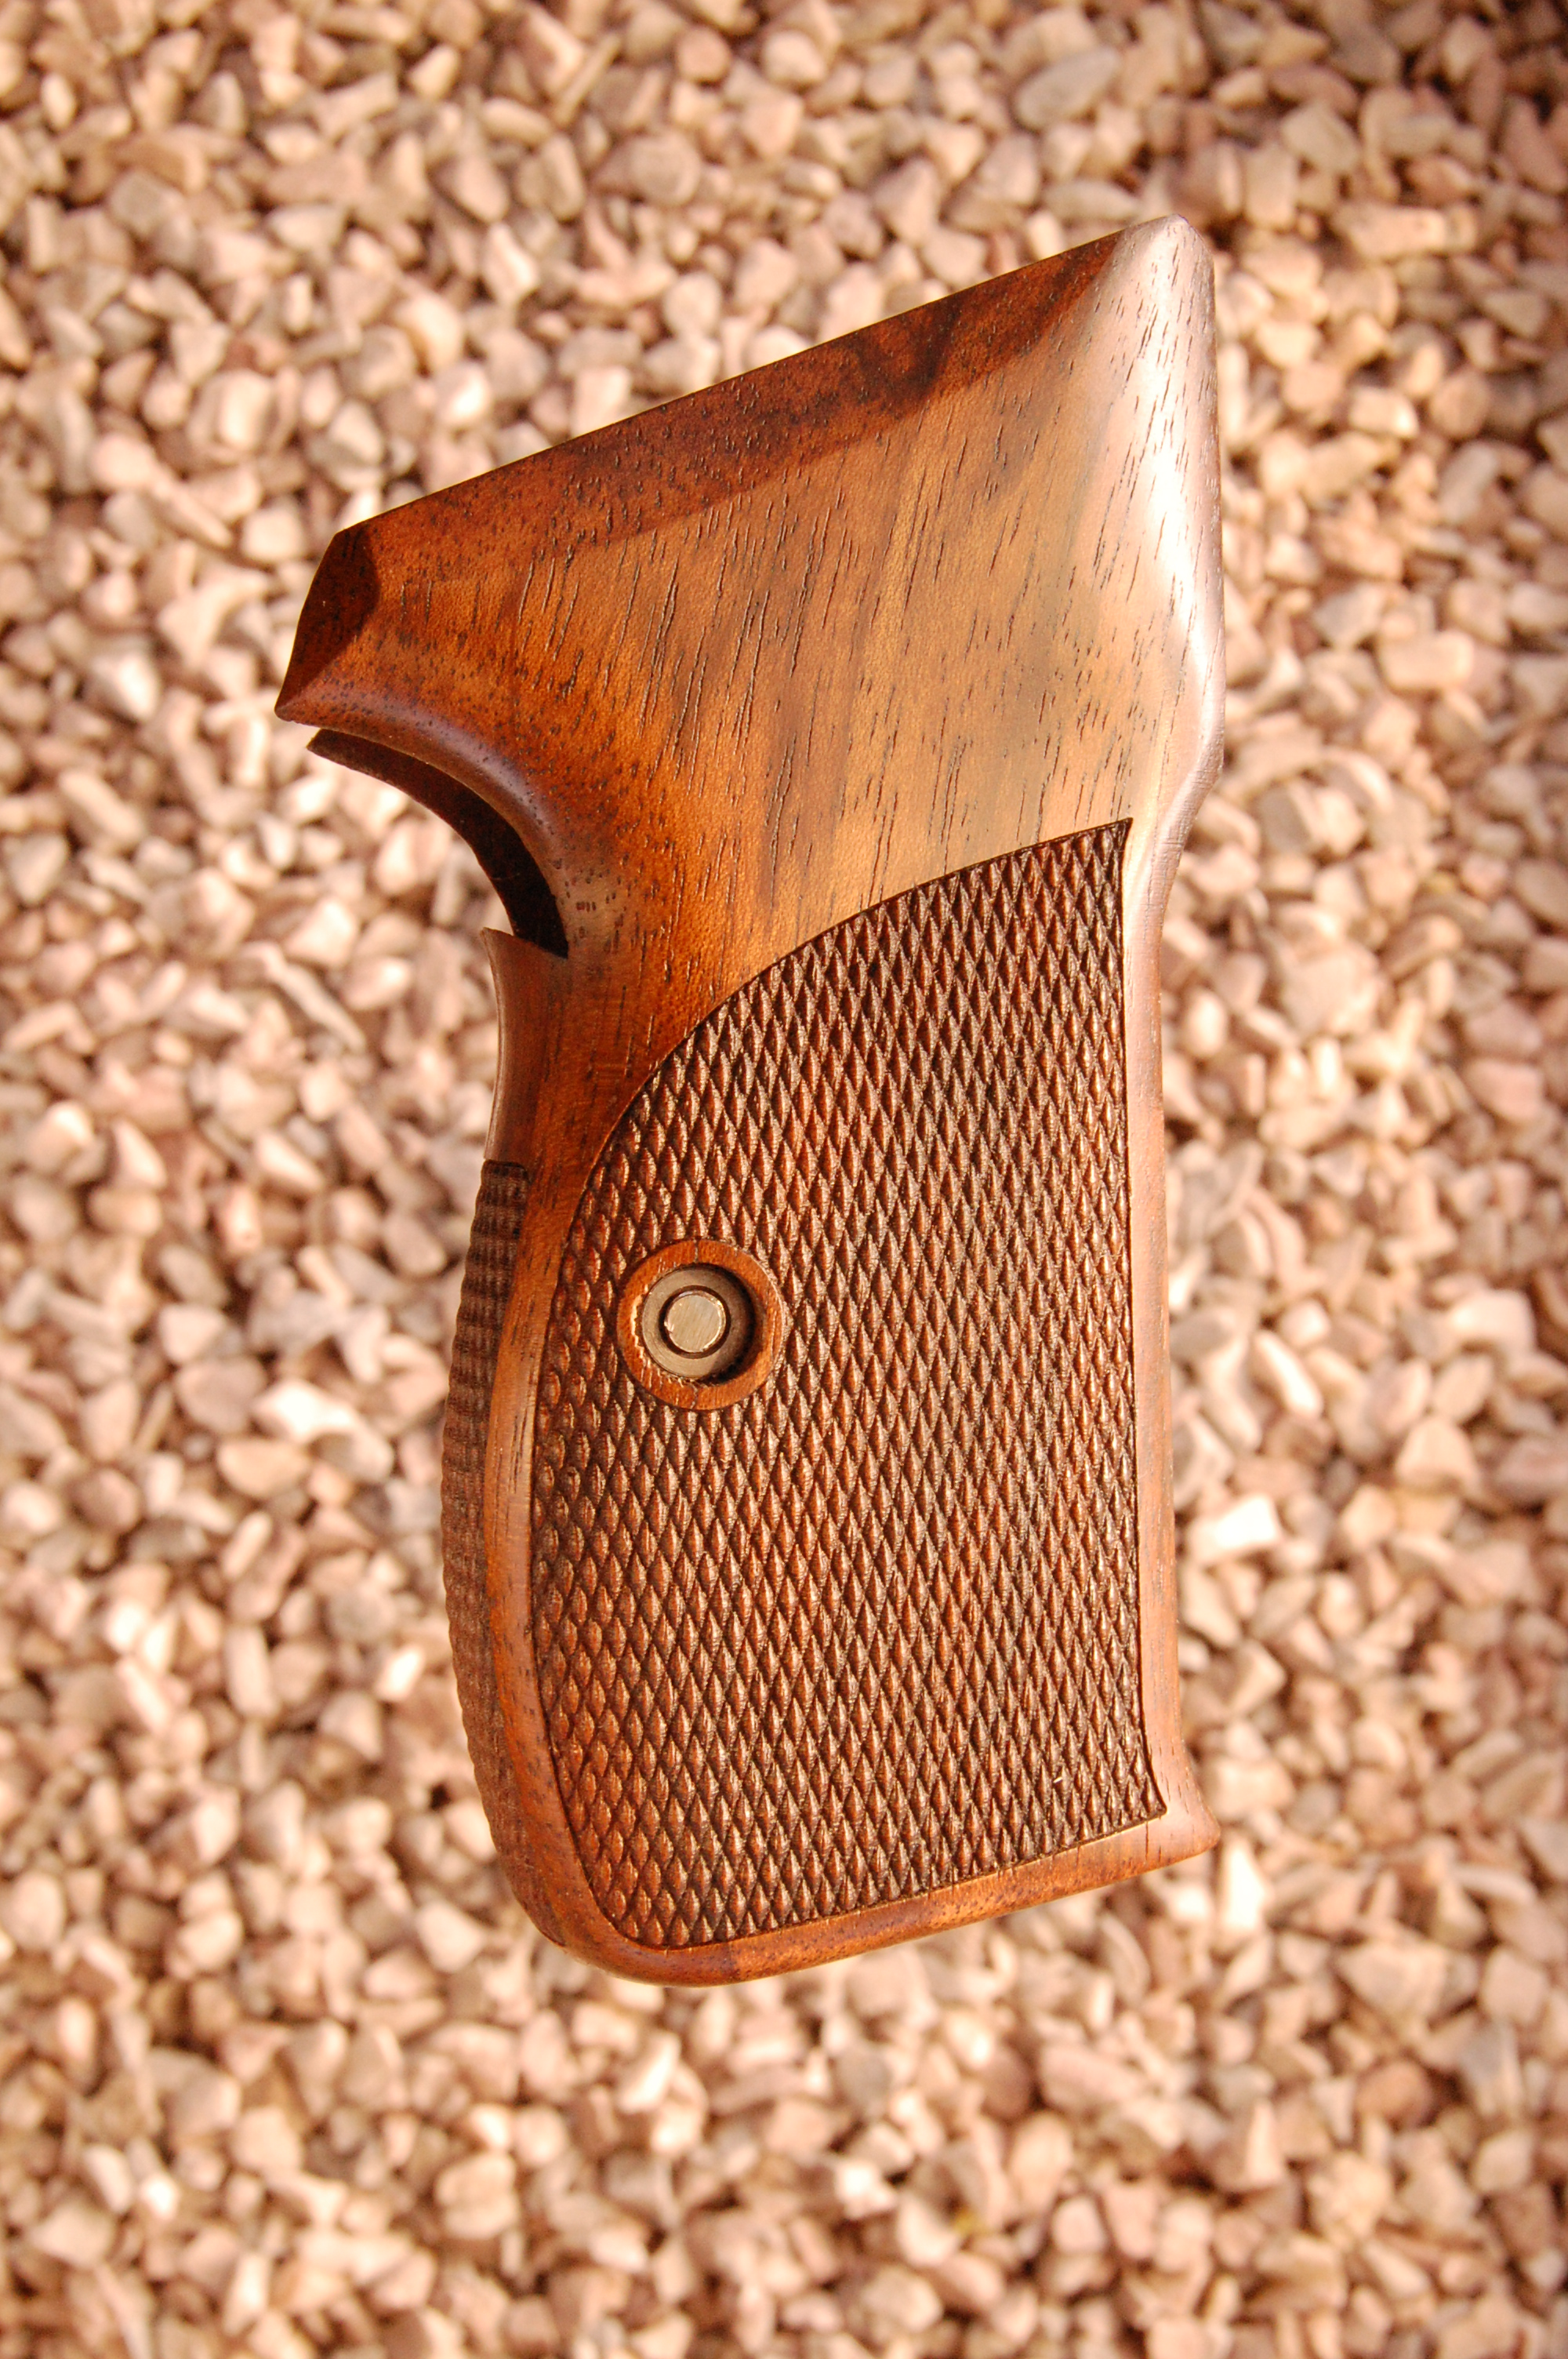 SIG P210A American grips (checkered back) - full size